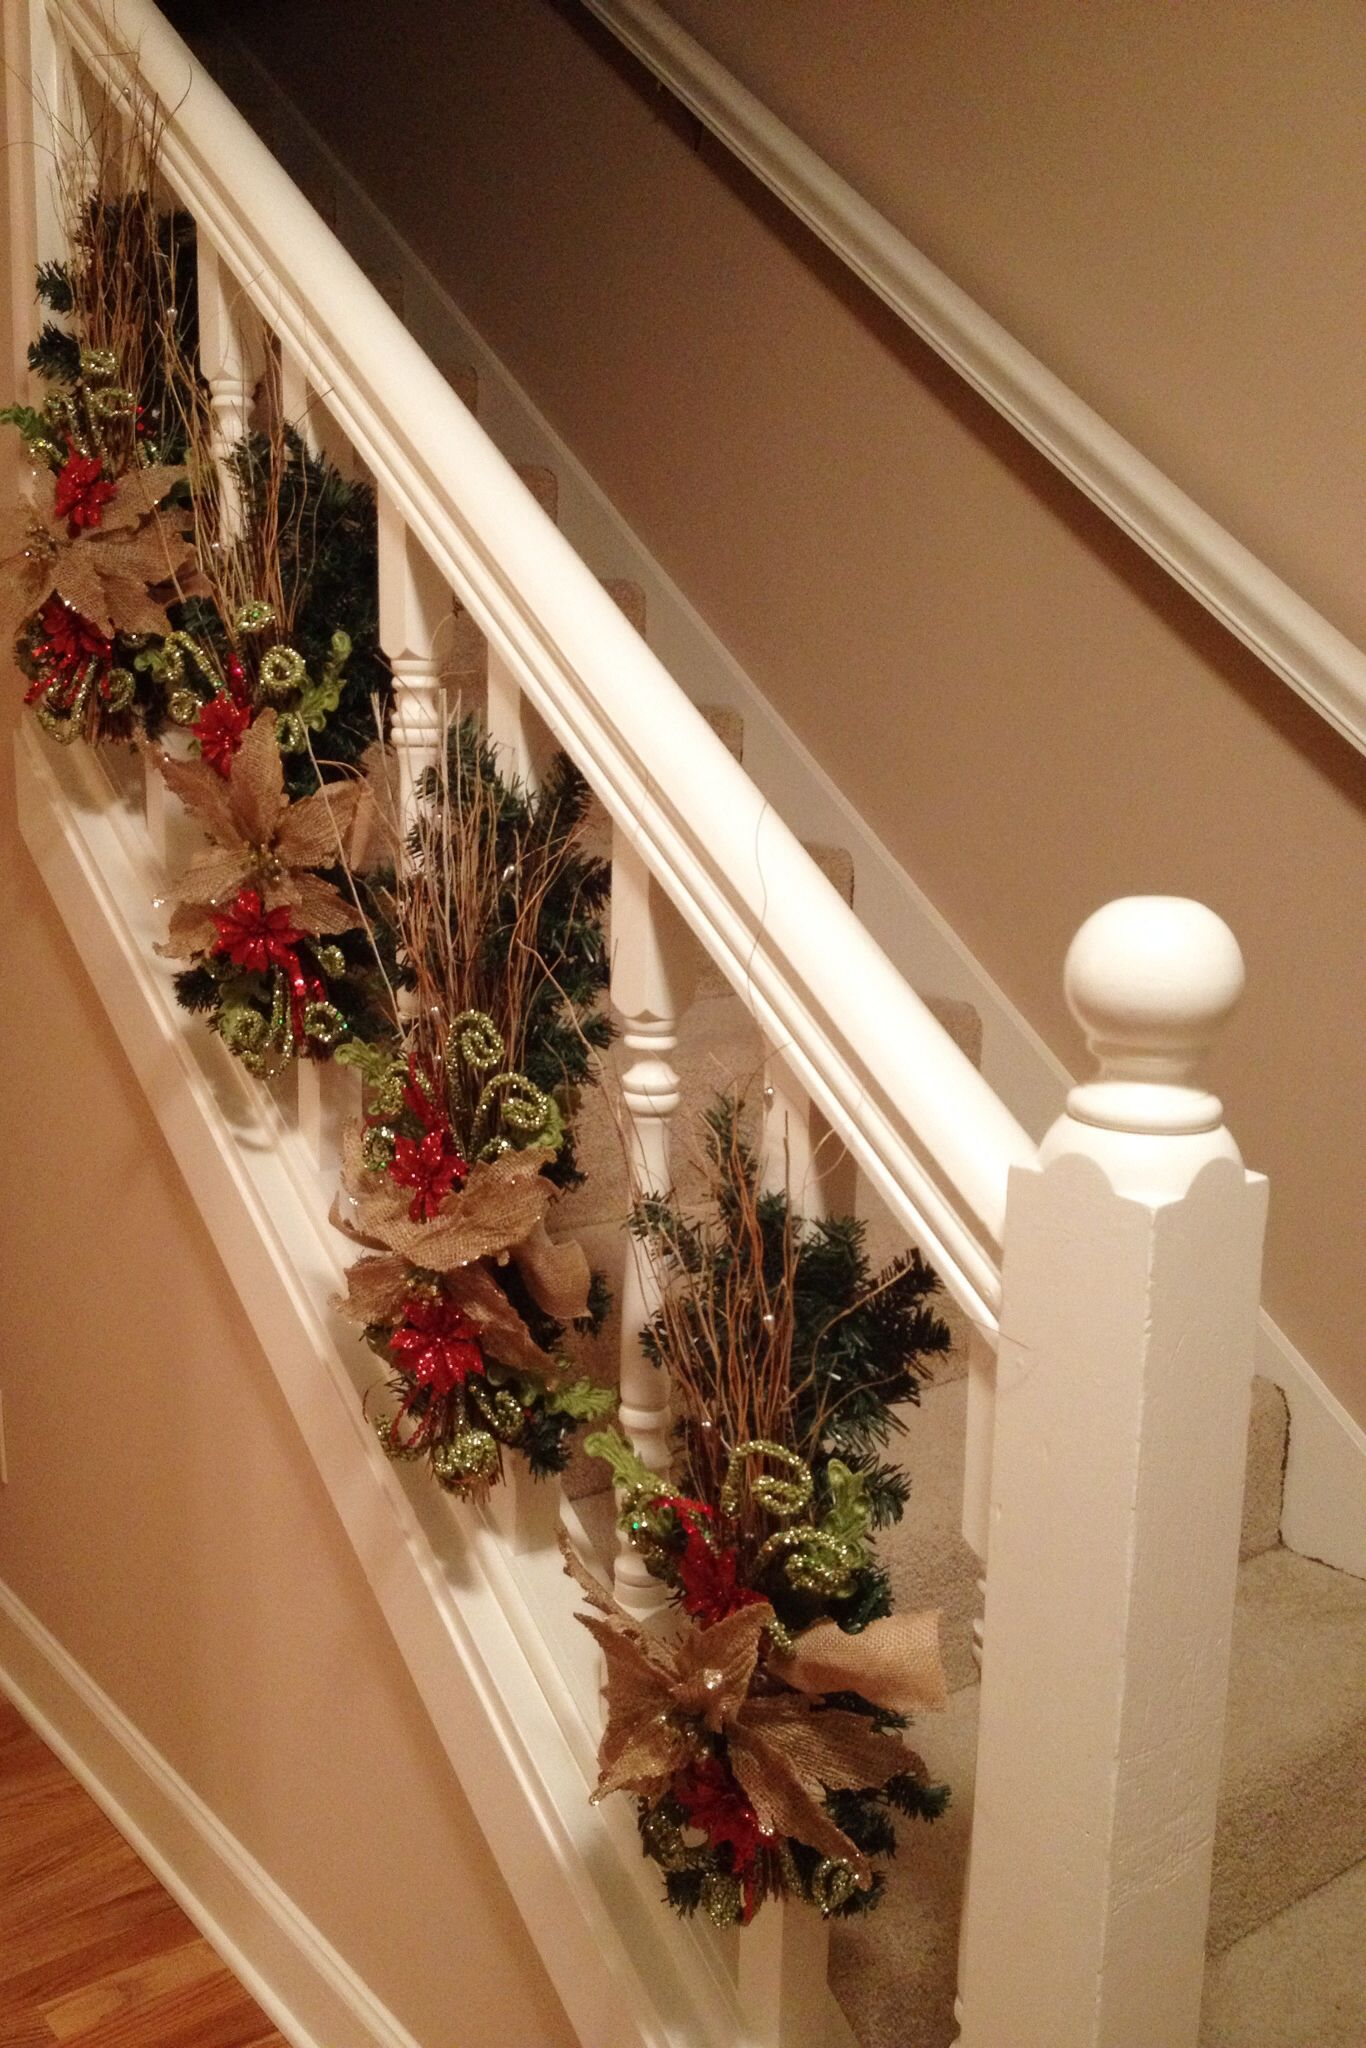 christmas banister decorations different from the standard garland - Banister Christmas Decorations